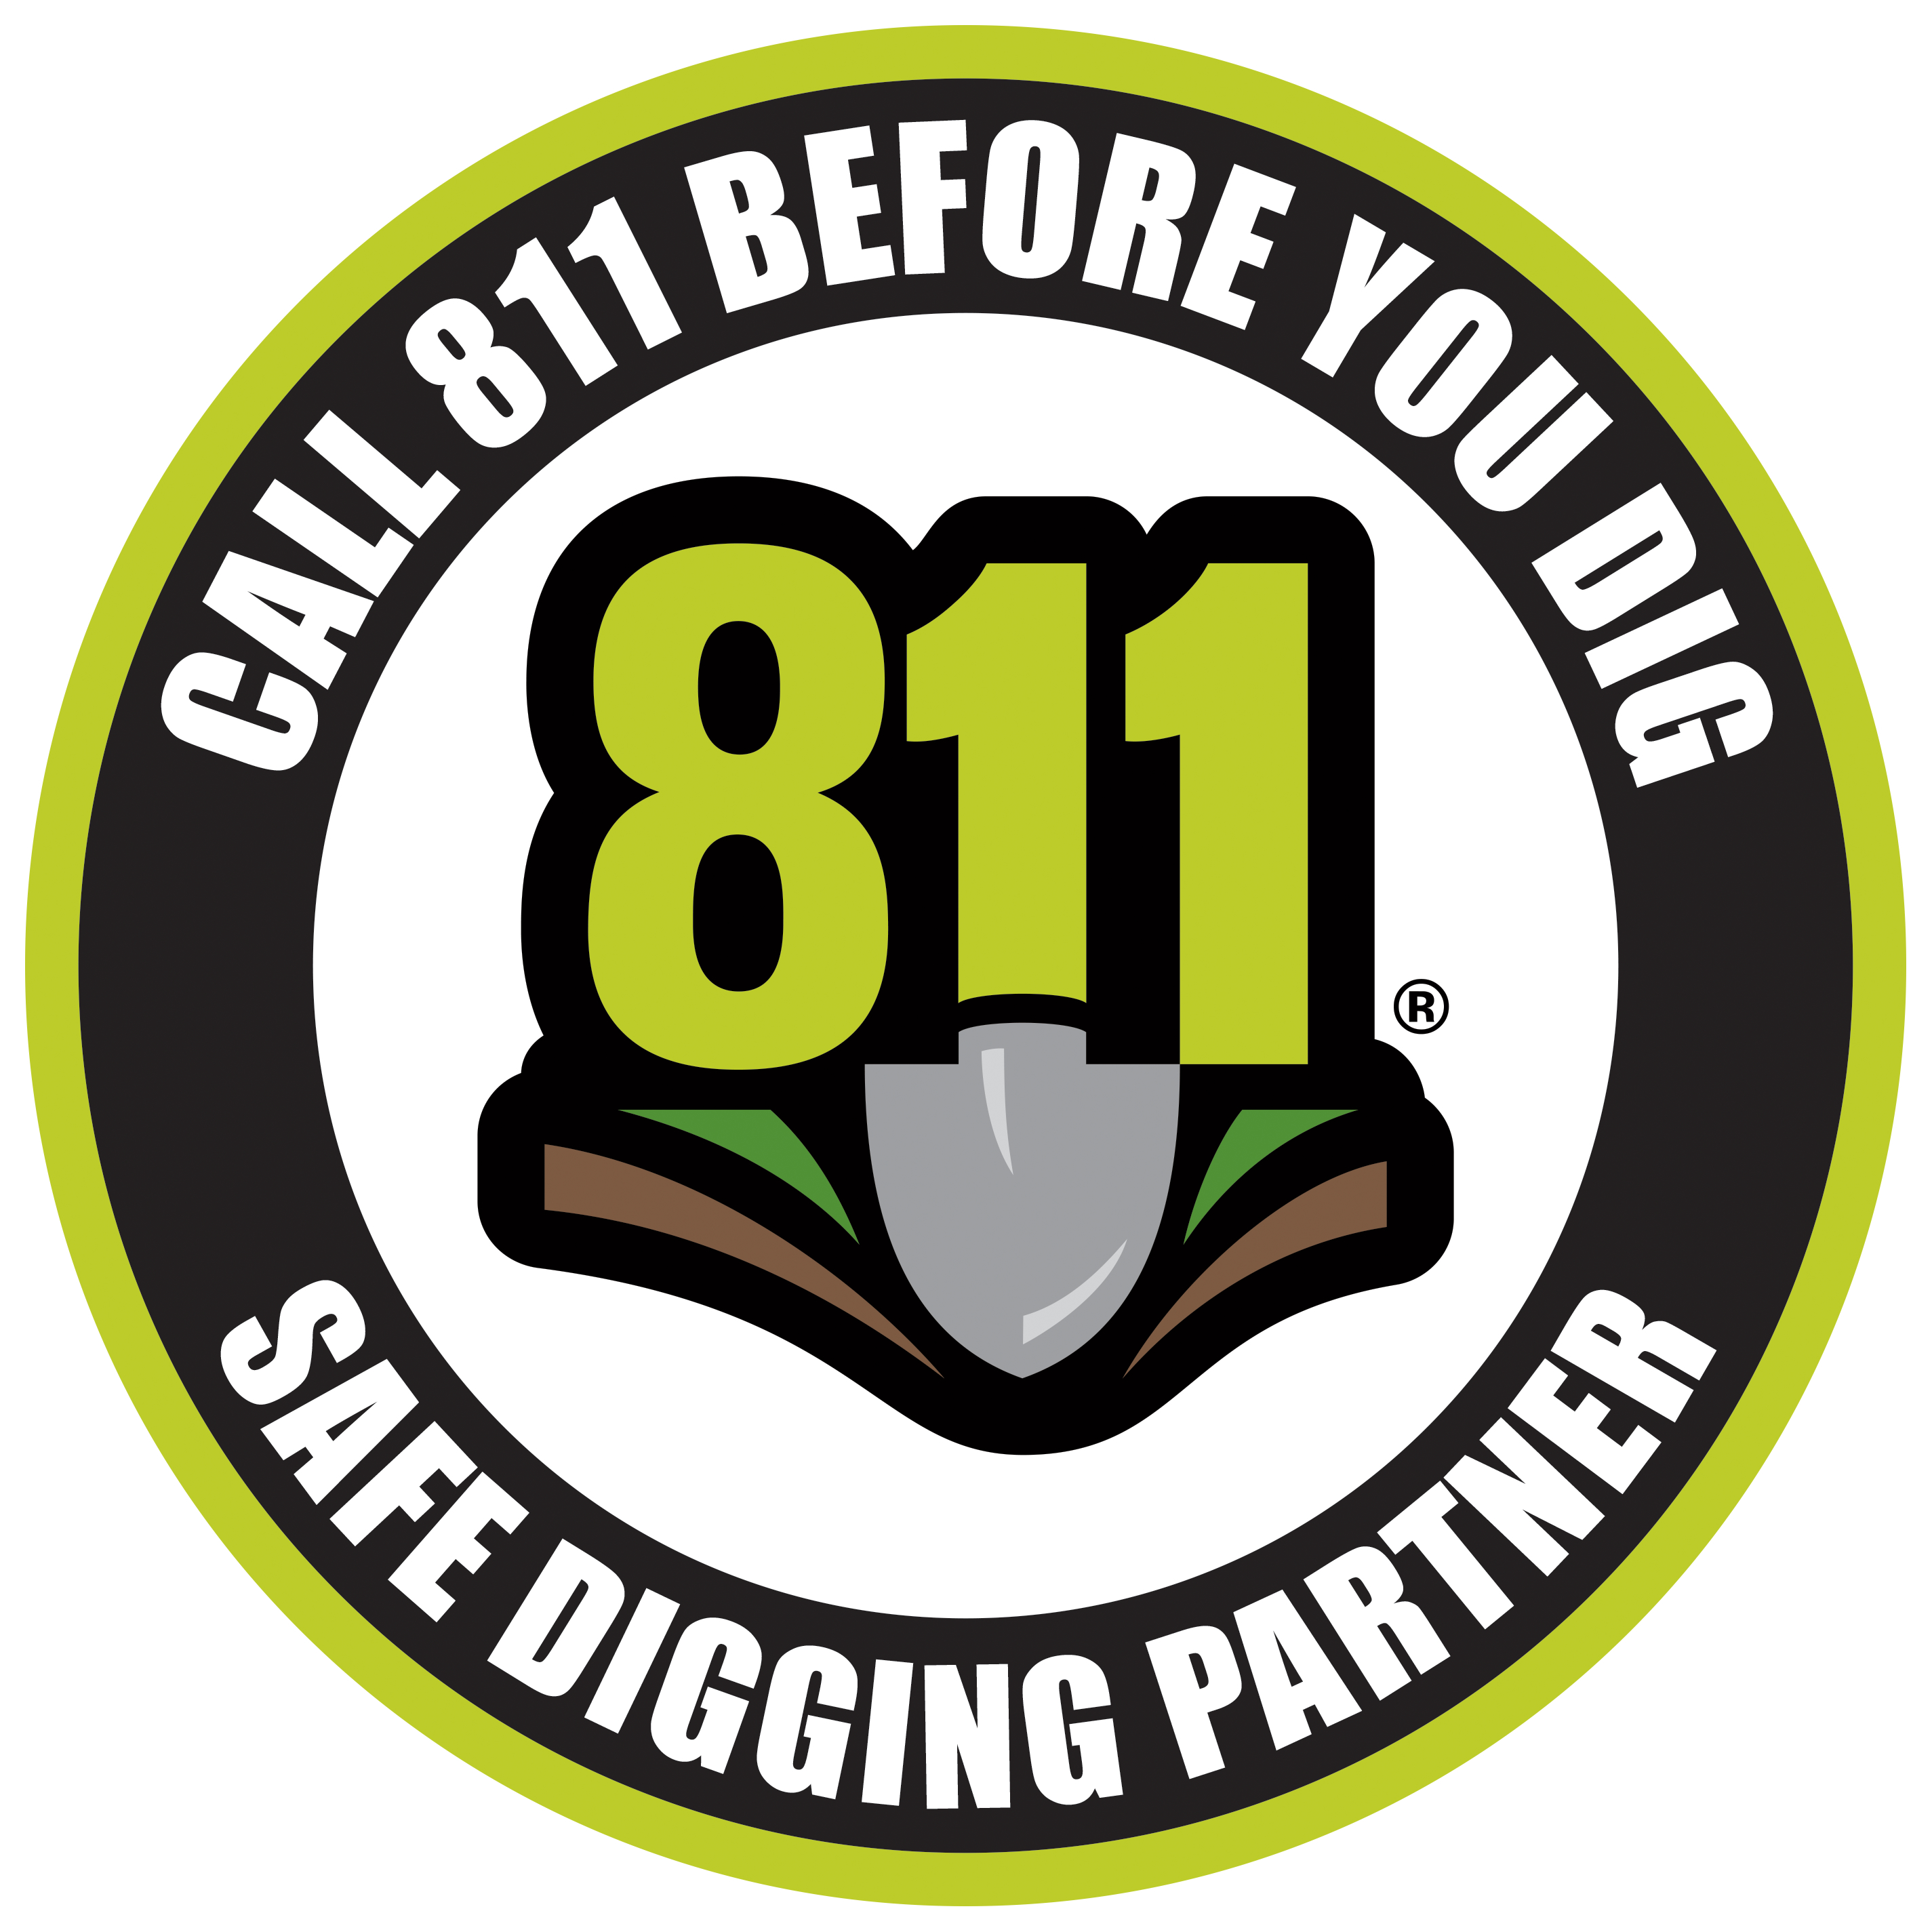 Georgia 811 Miss dig is michigan's only utility safety notification system. georgia 811